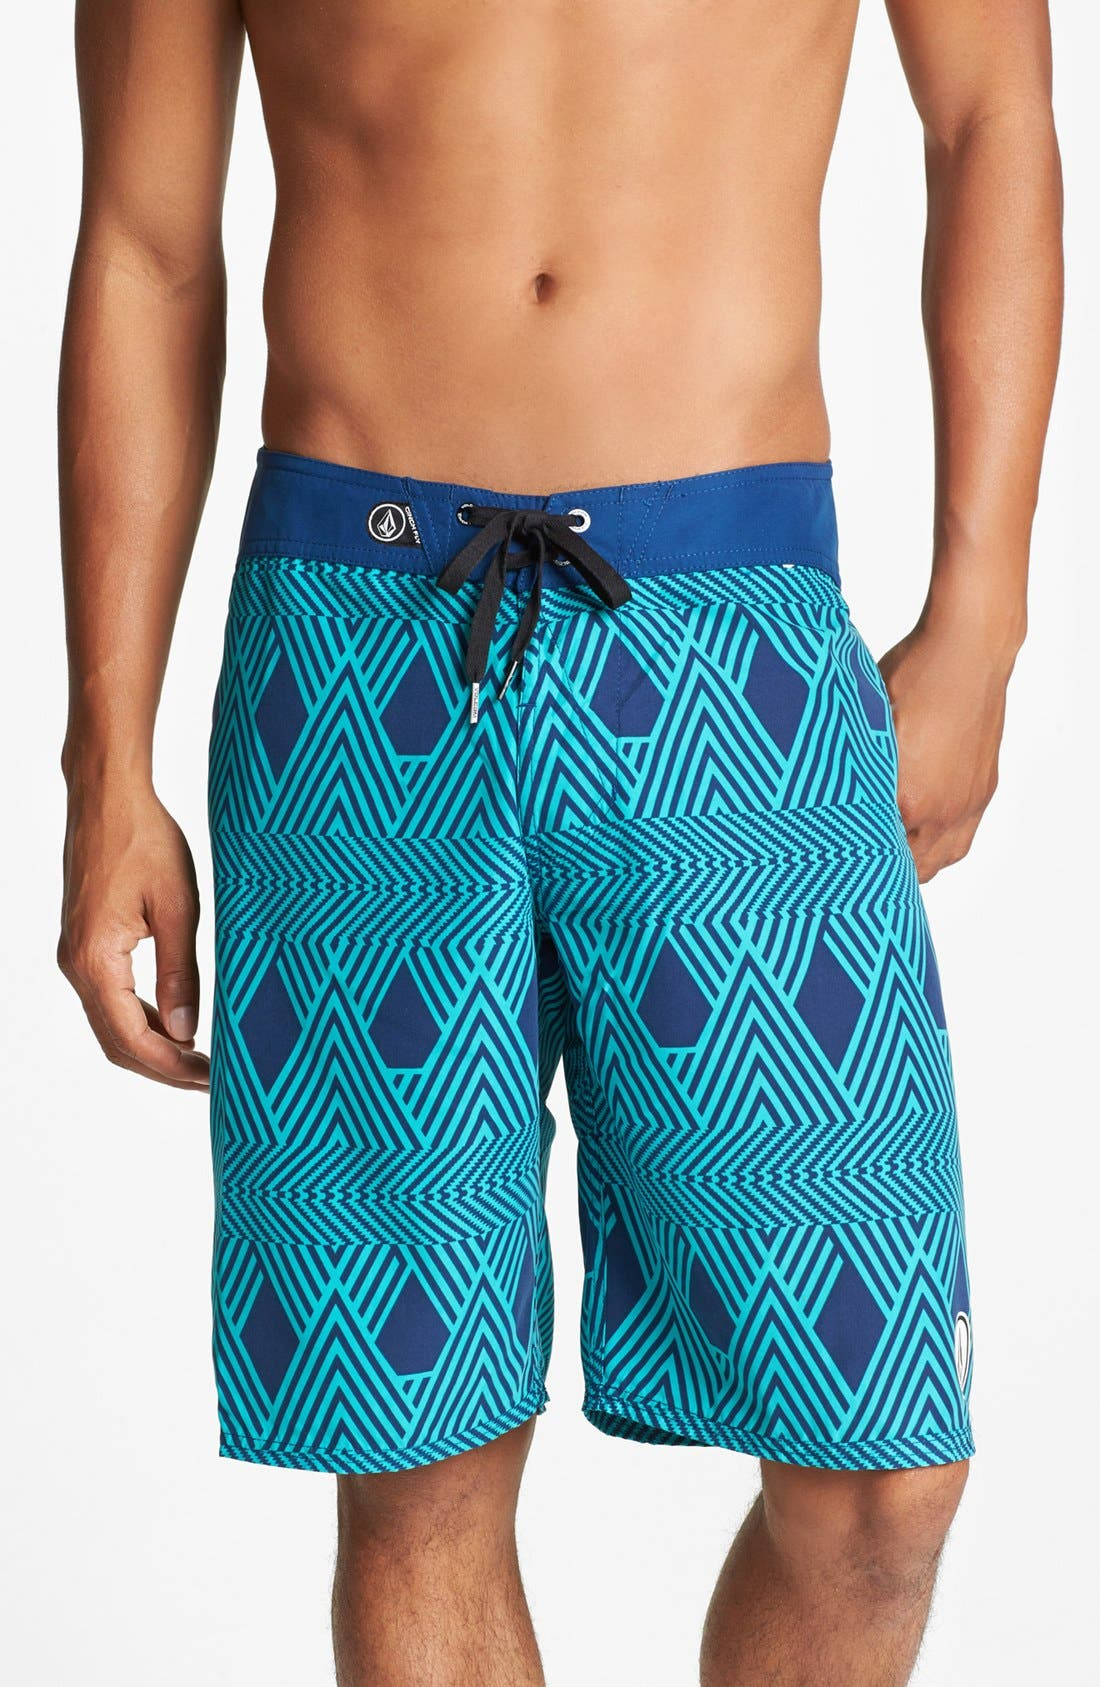 Alternate Image 1 Selected - Volcom '45th St.' Board Shorts